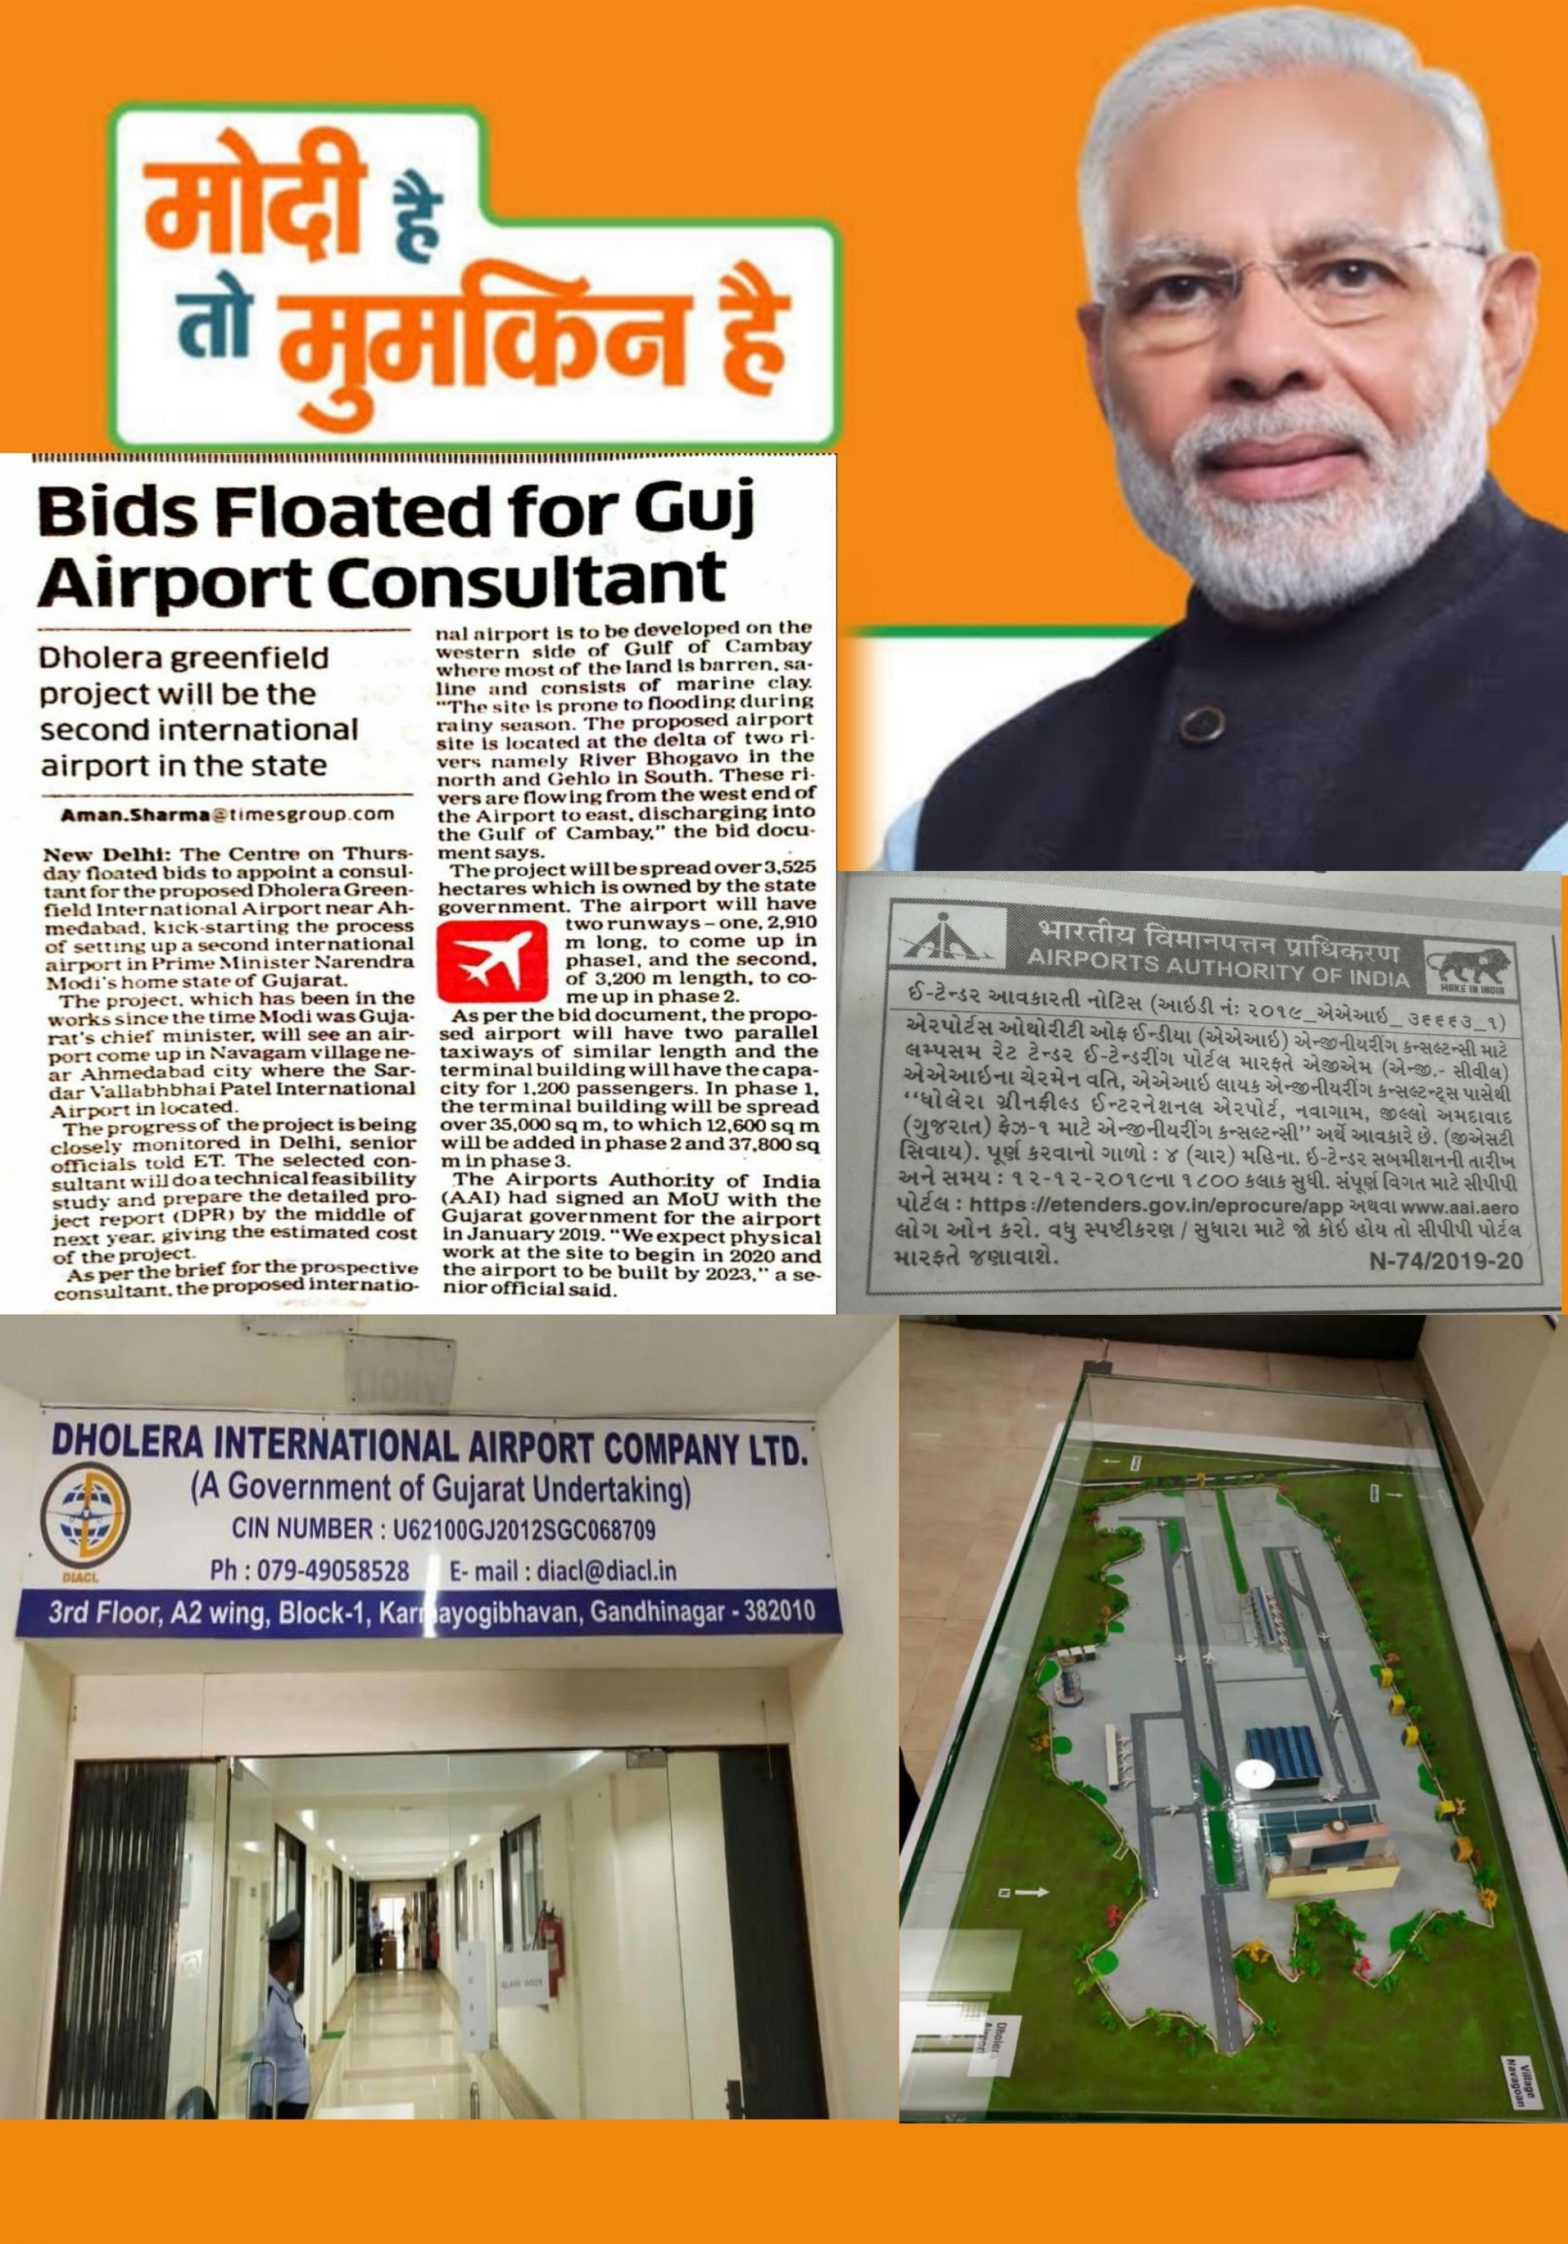 Dholera greenfield project will be the second international airport in the state